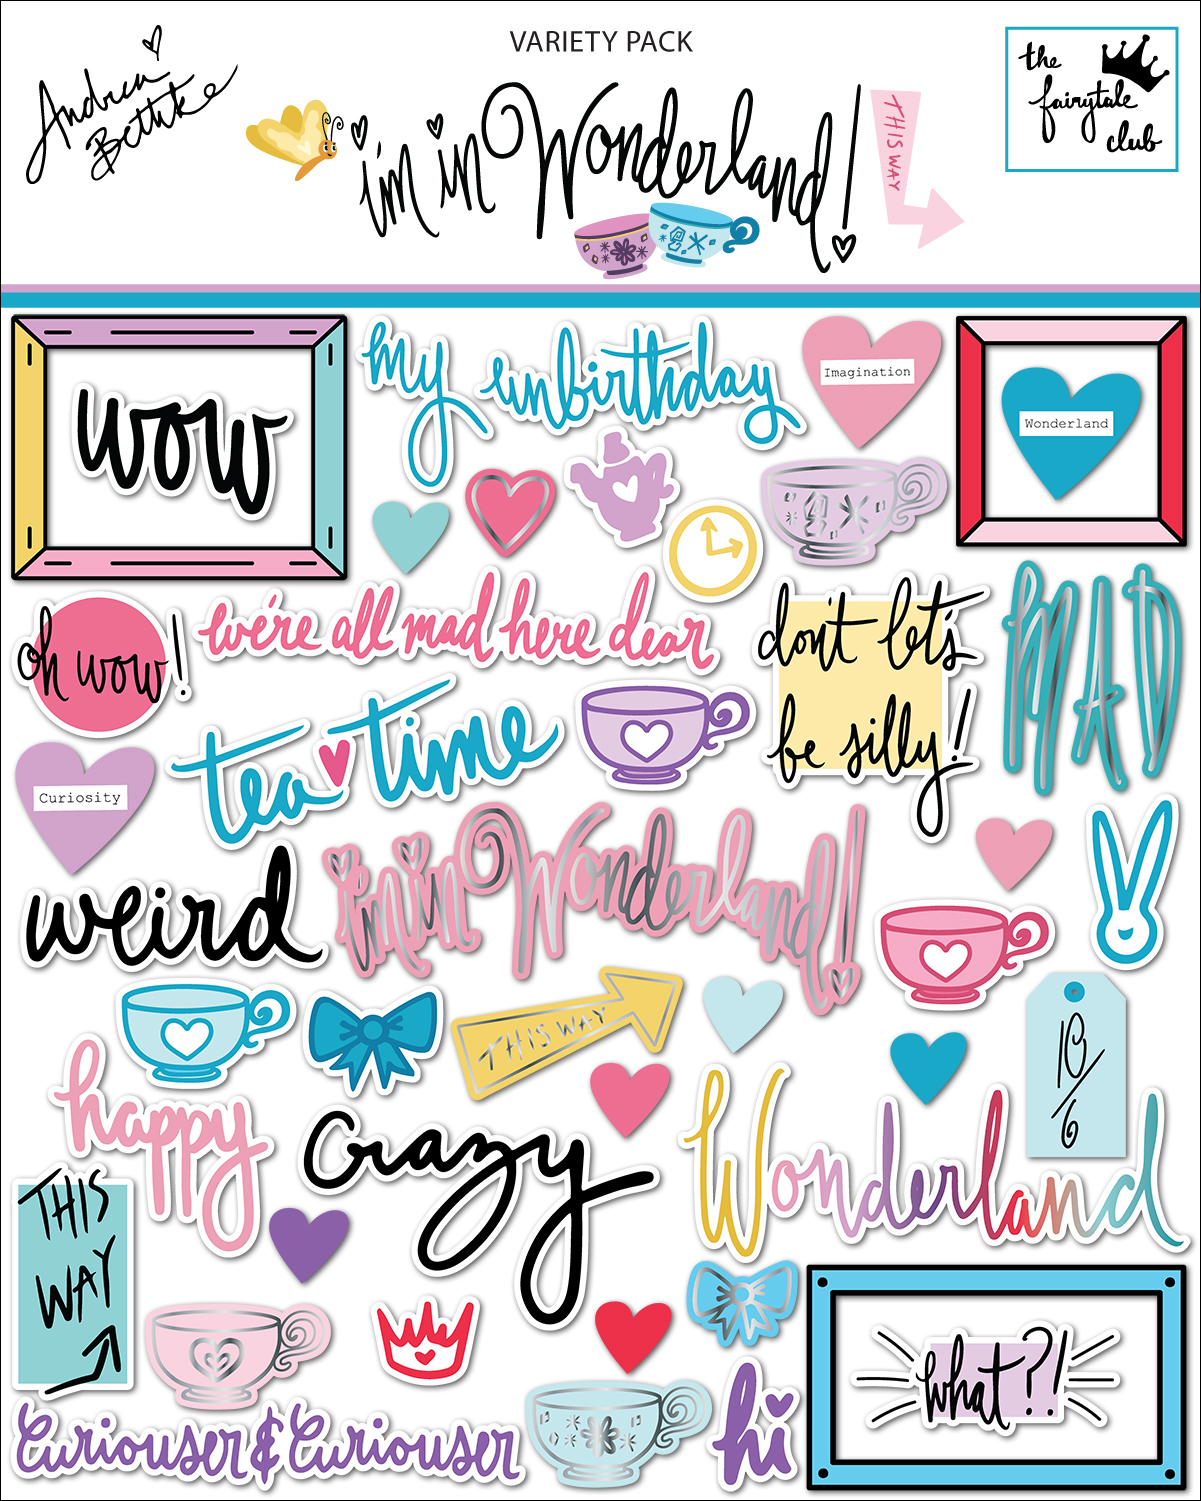 I'm in Wonderland - Variety Pack with outline.jpg